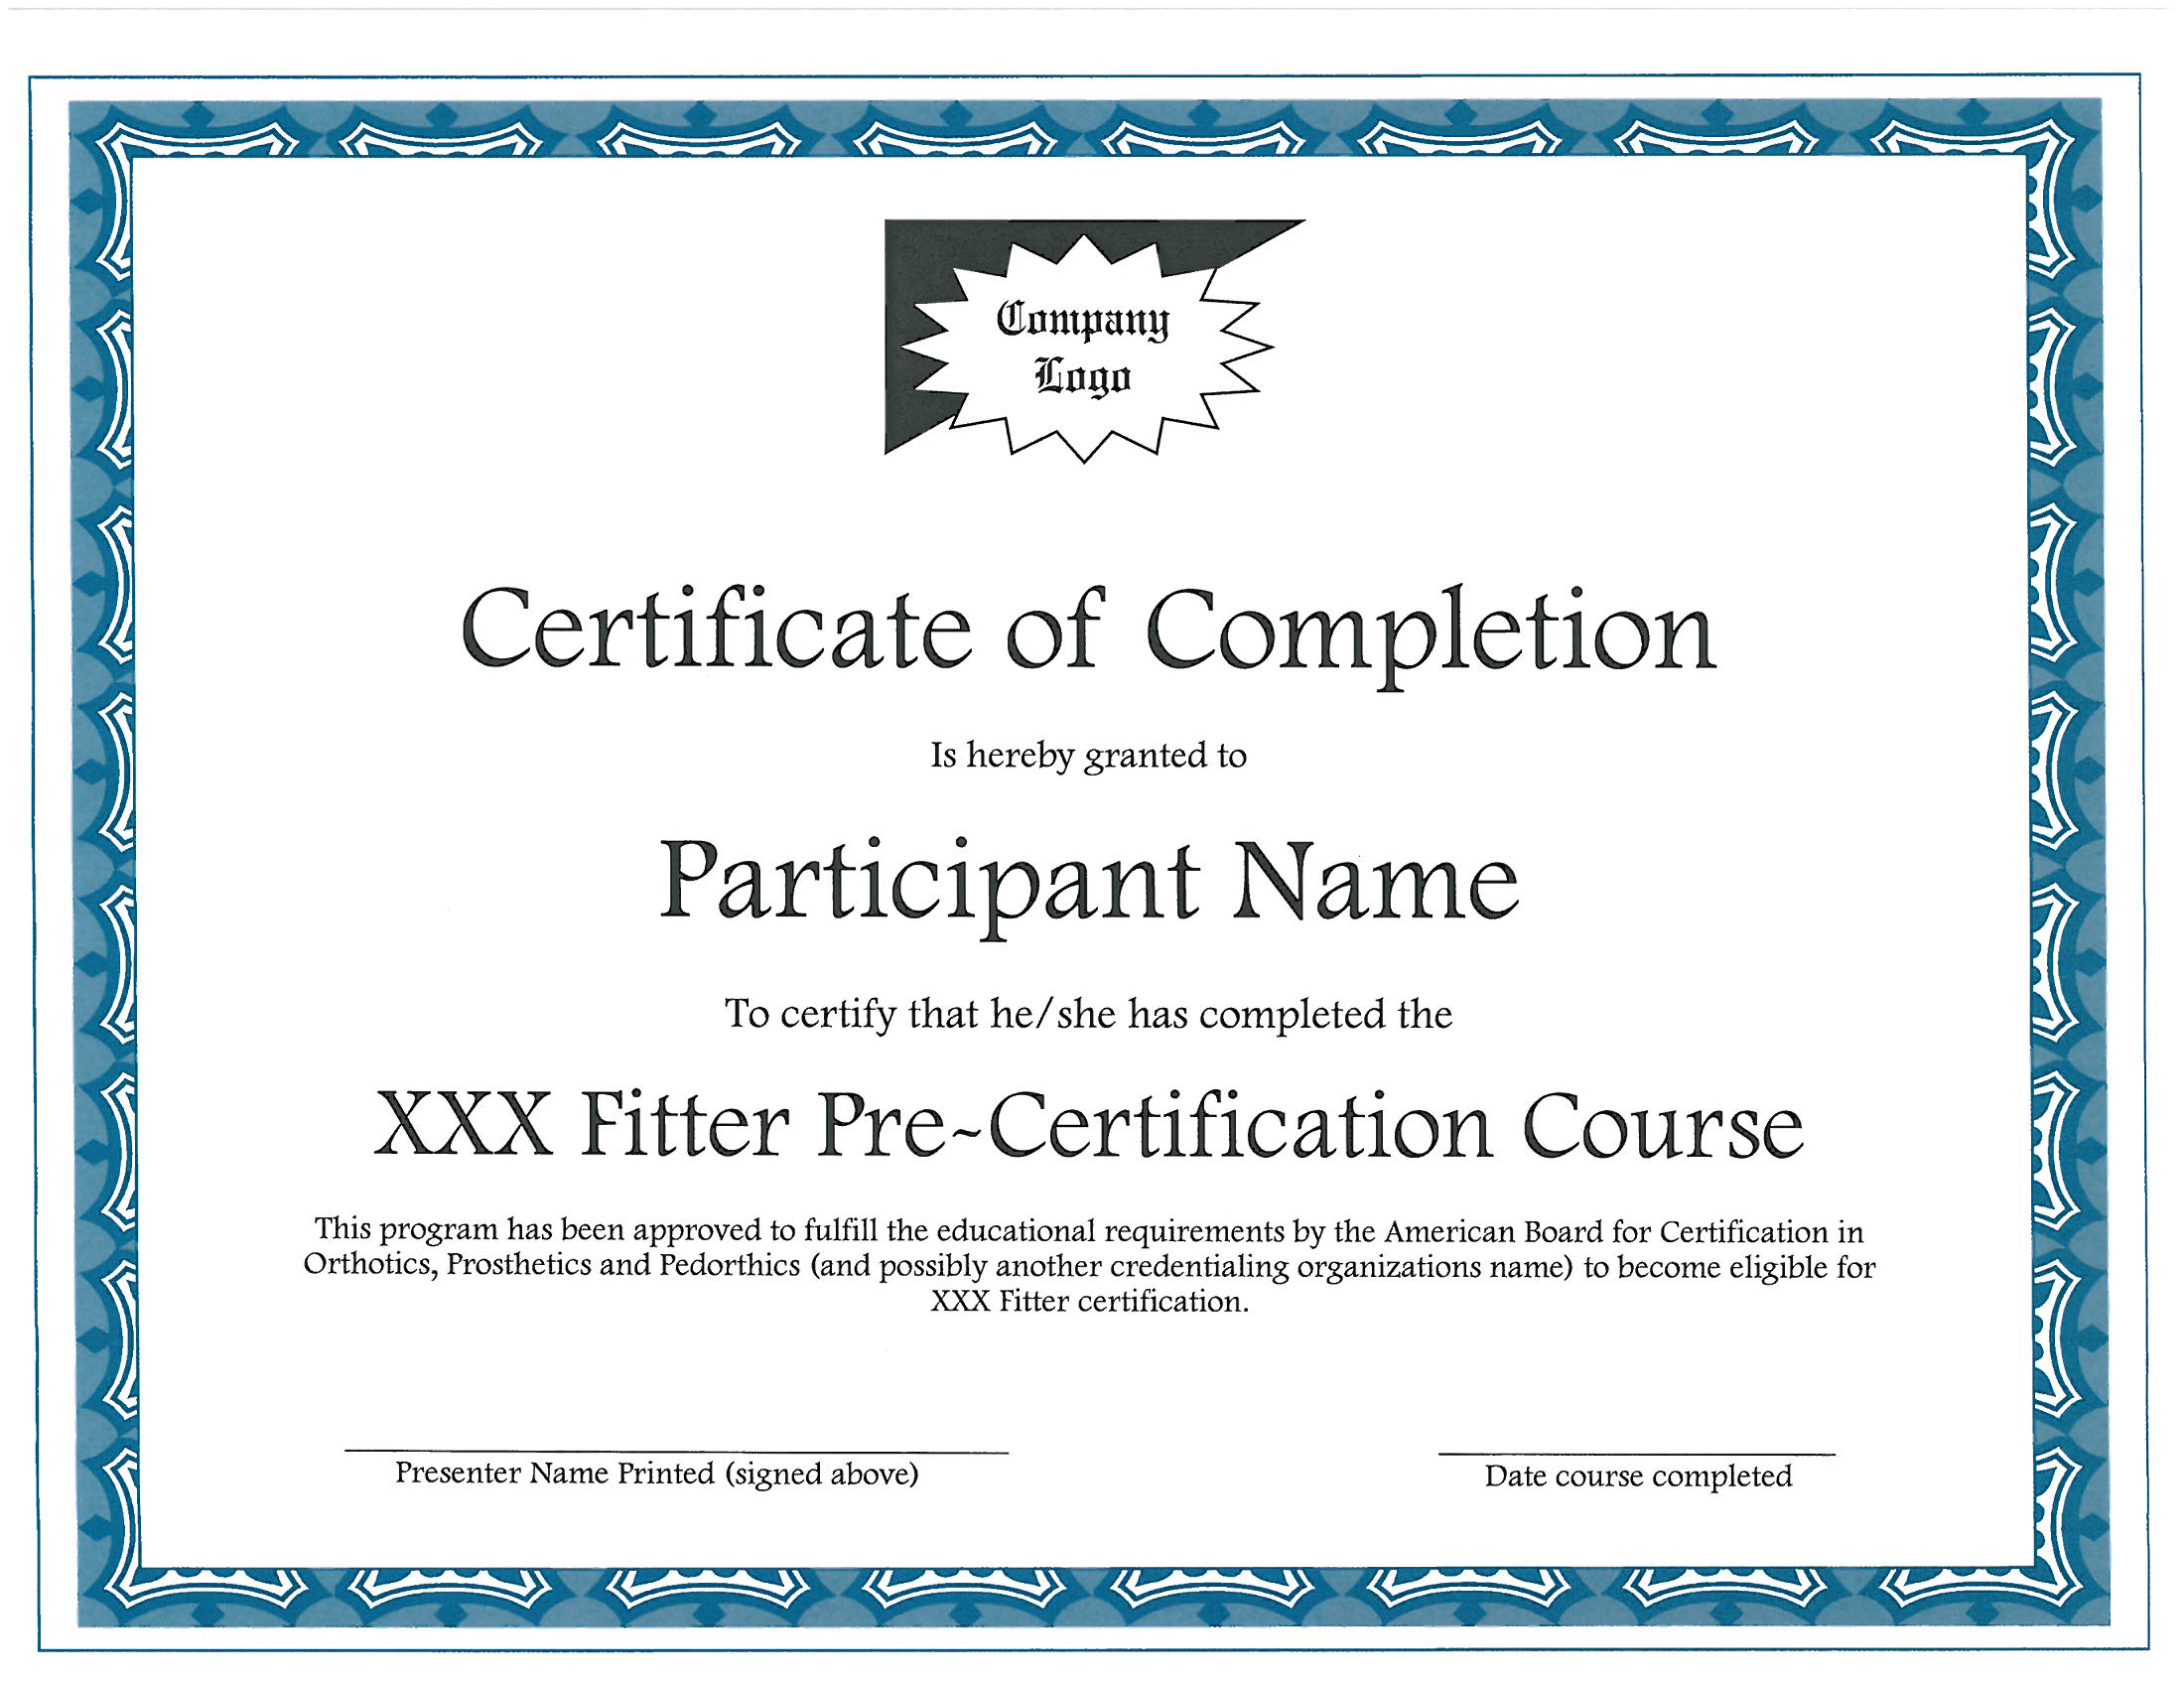 N10-006 Latest Certification Tests